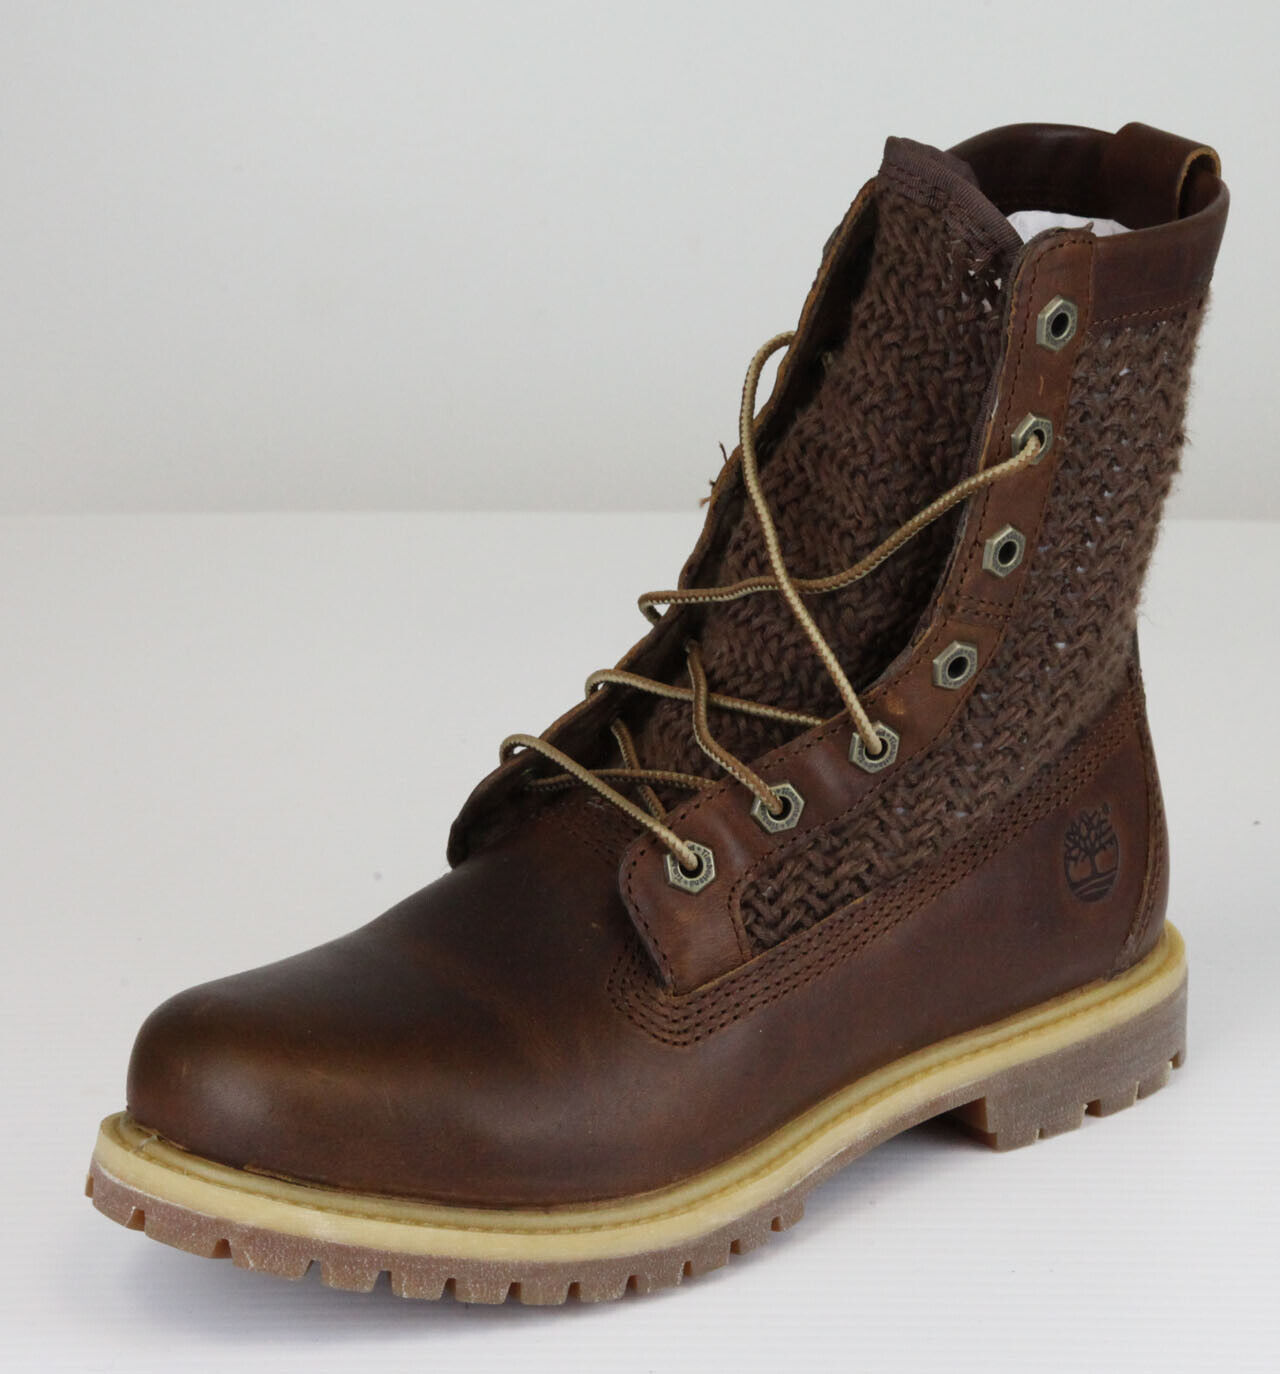 Timberland Women's Brown Auth Open Weave Work Boots Shoes $150 New